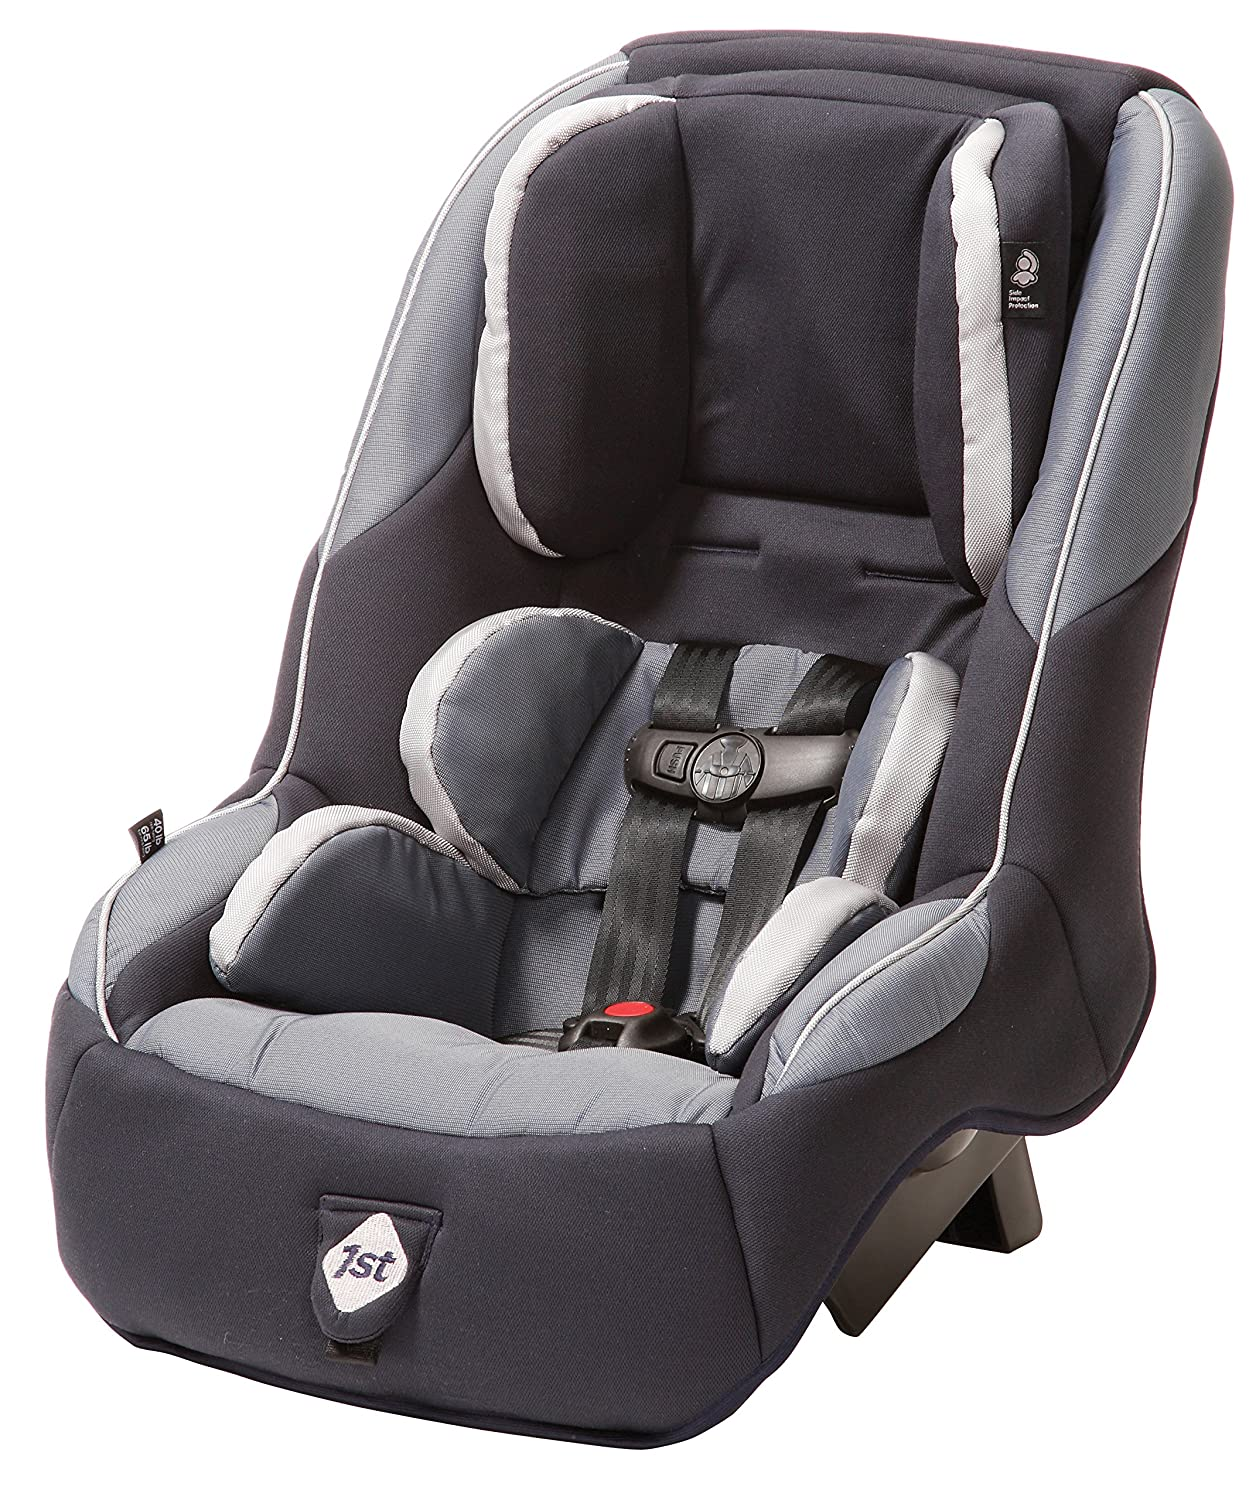 Top 10 Best Car Seats For Small Cars